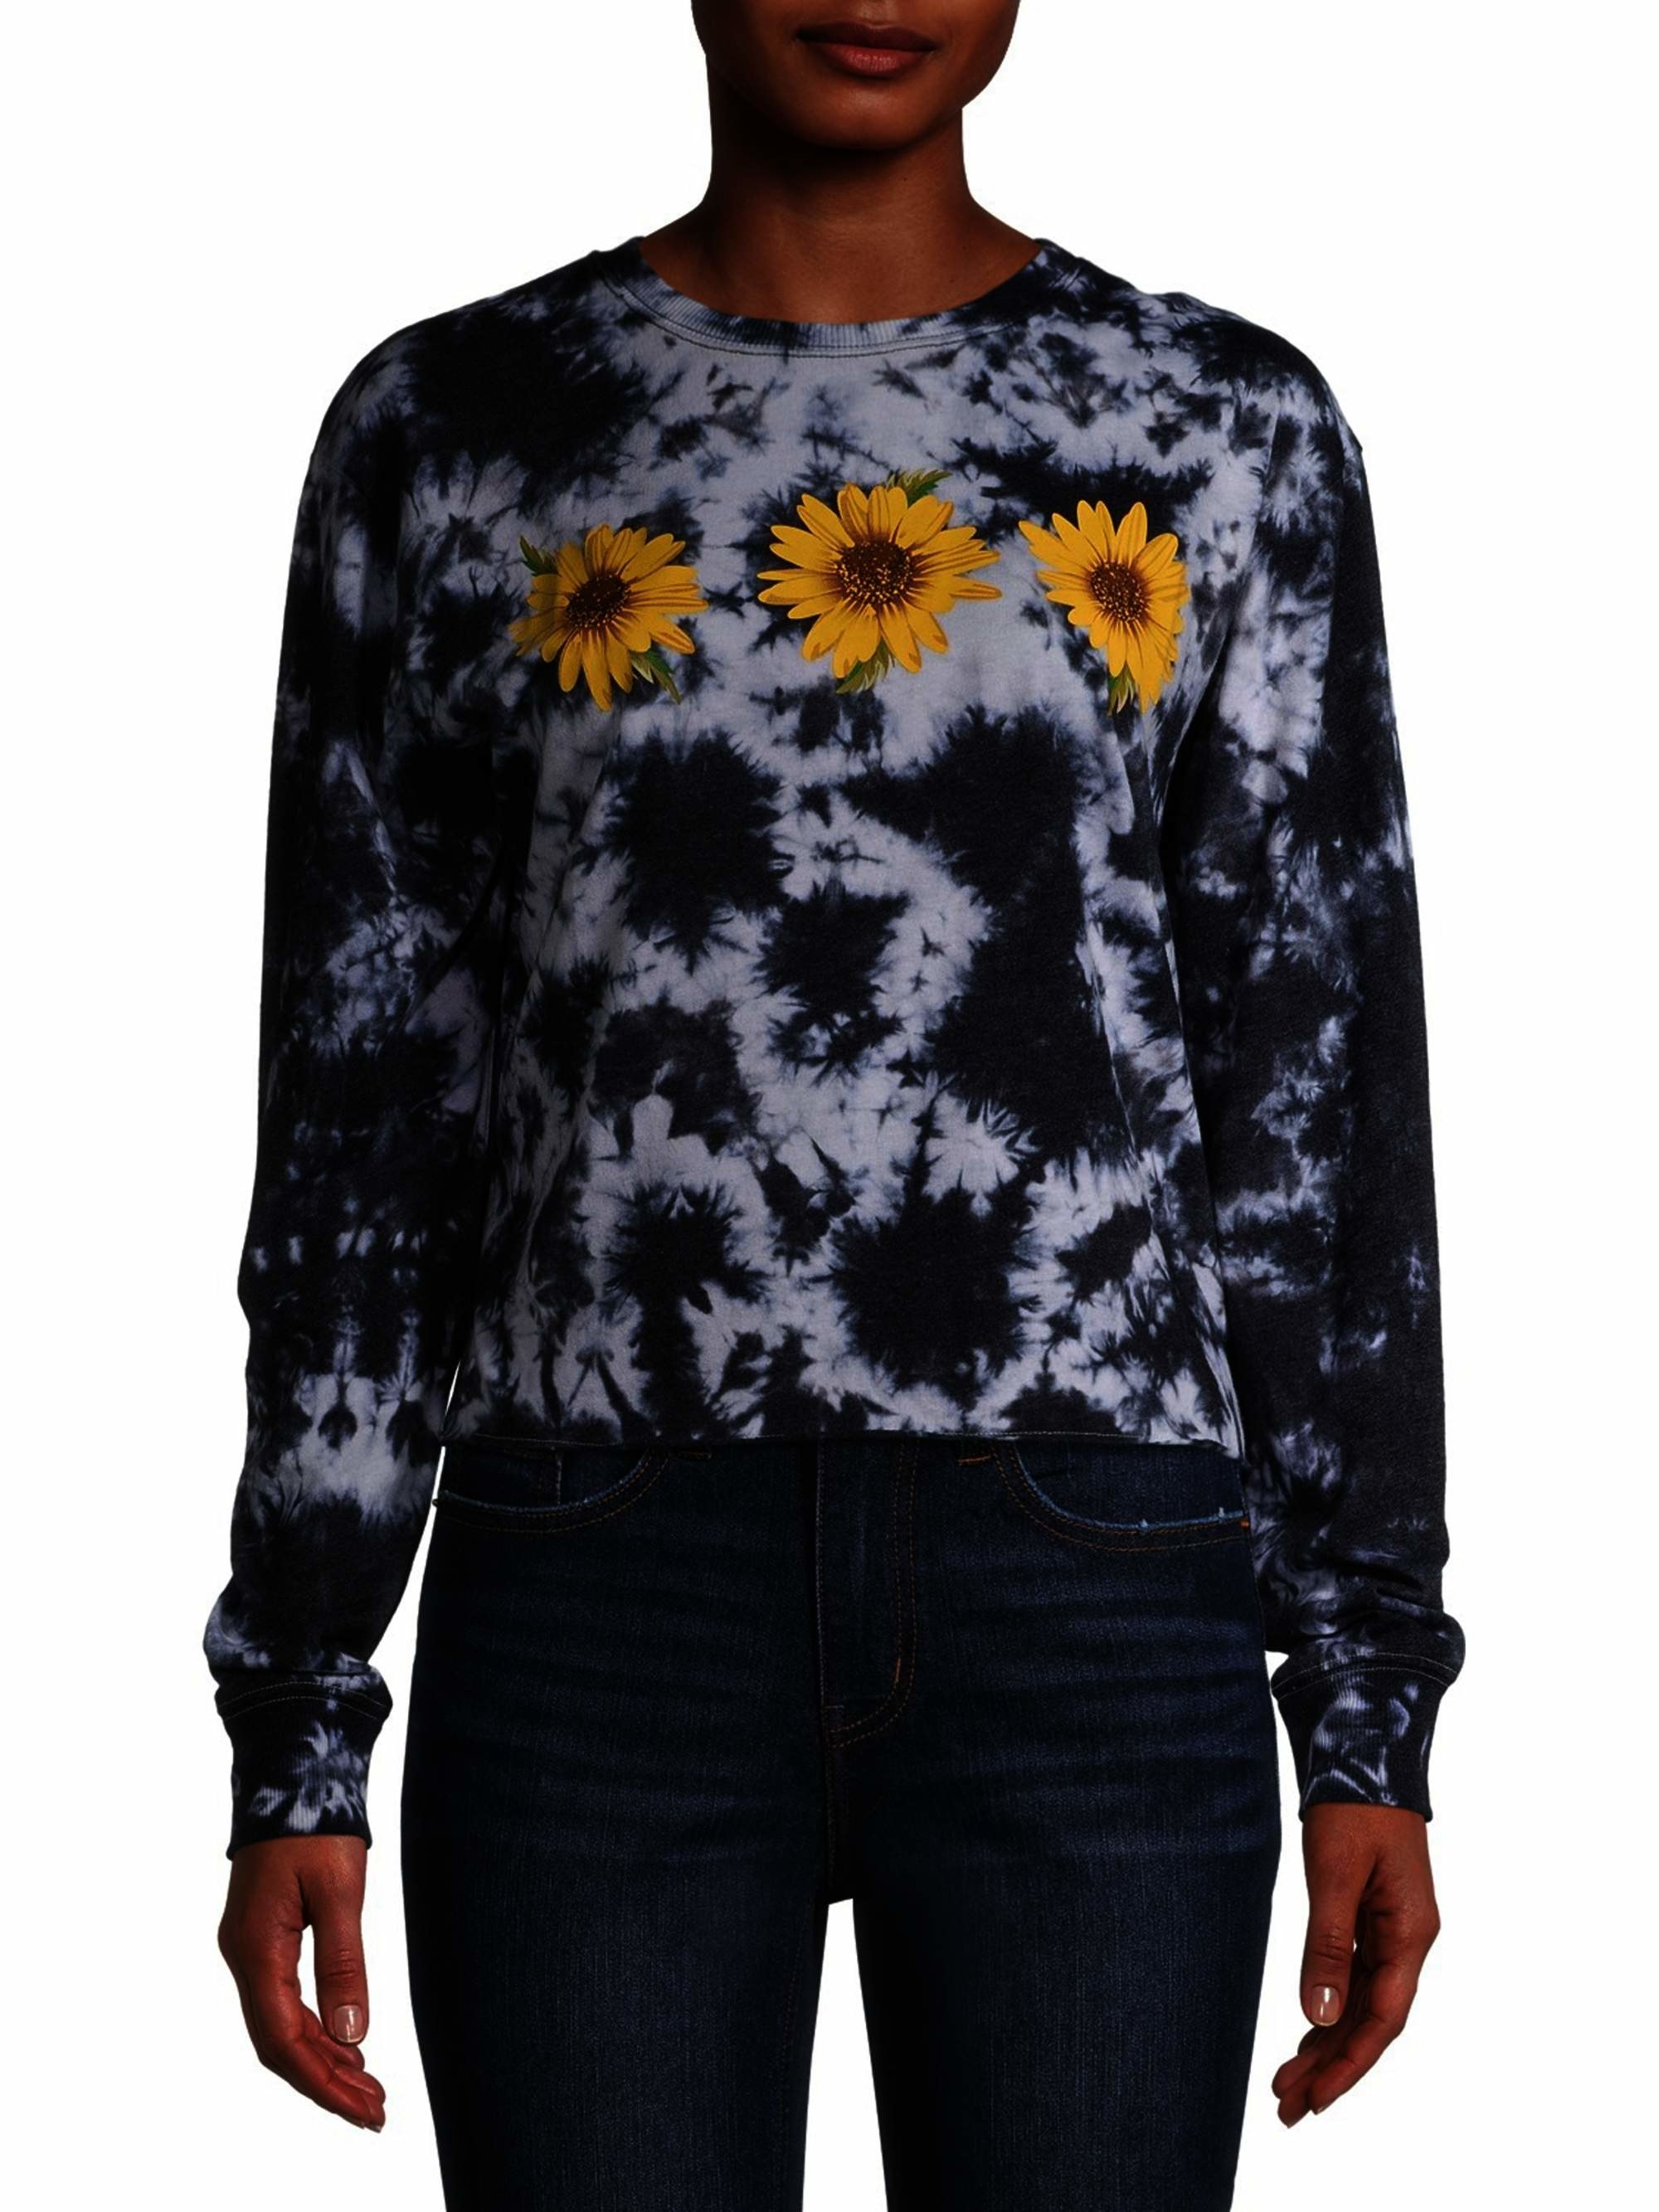 The black tie-dye shirt with three daisies across the chest